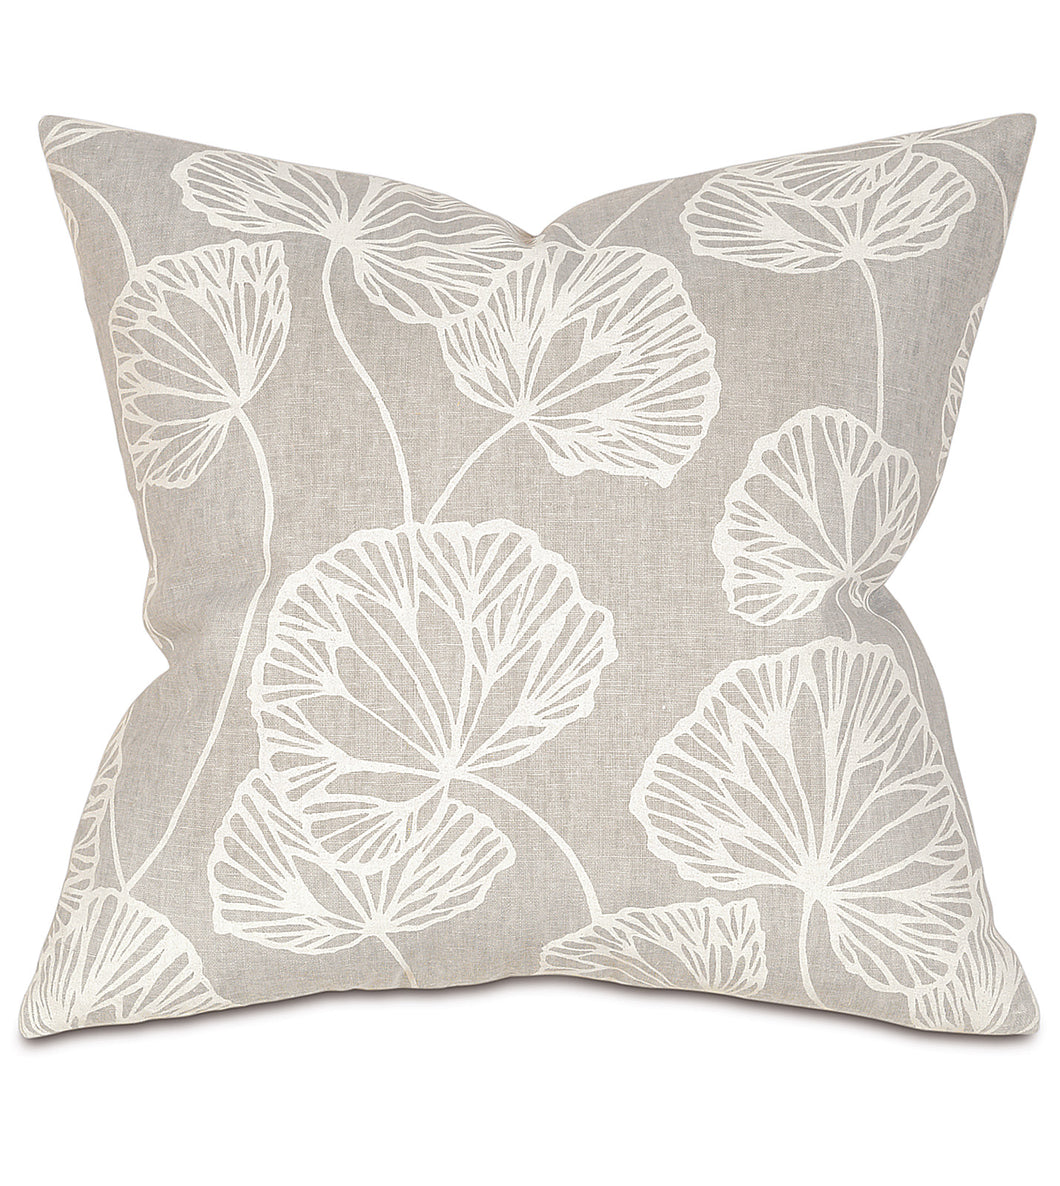 Light Gray Ginko Rustic Cabin Botanical Throw Pillow Knife Edge 20